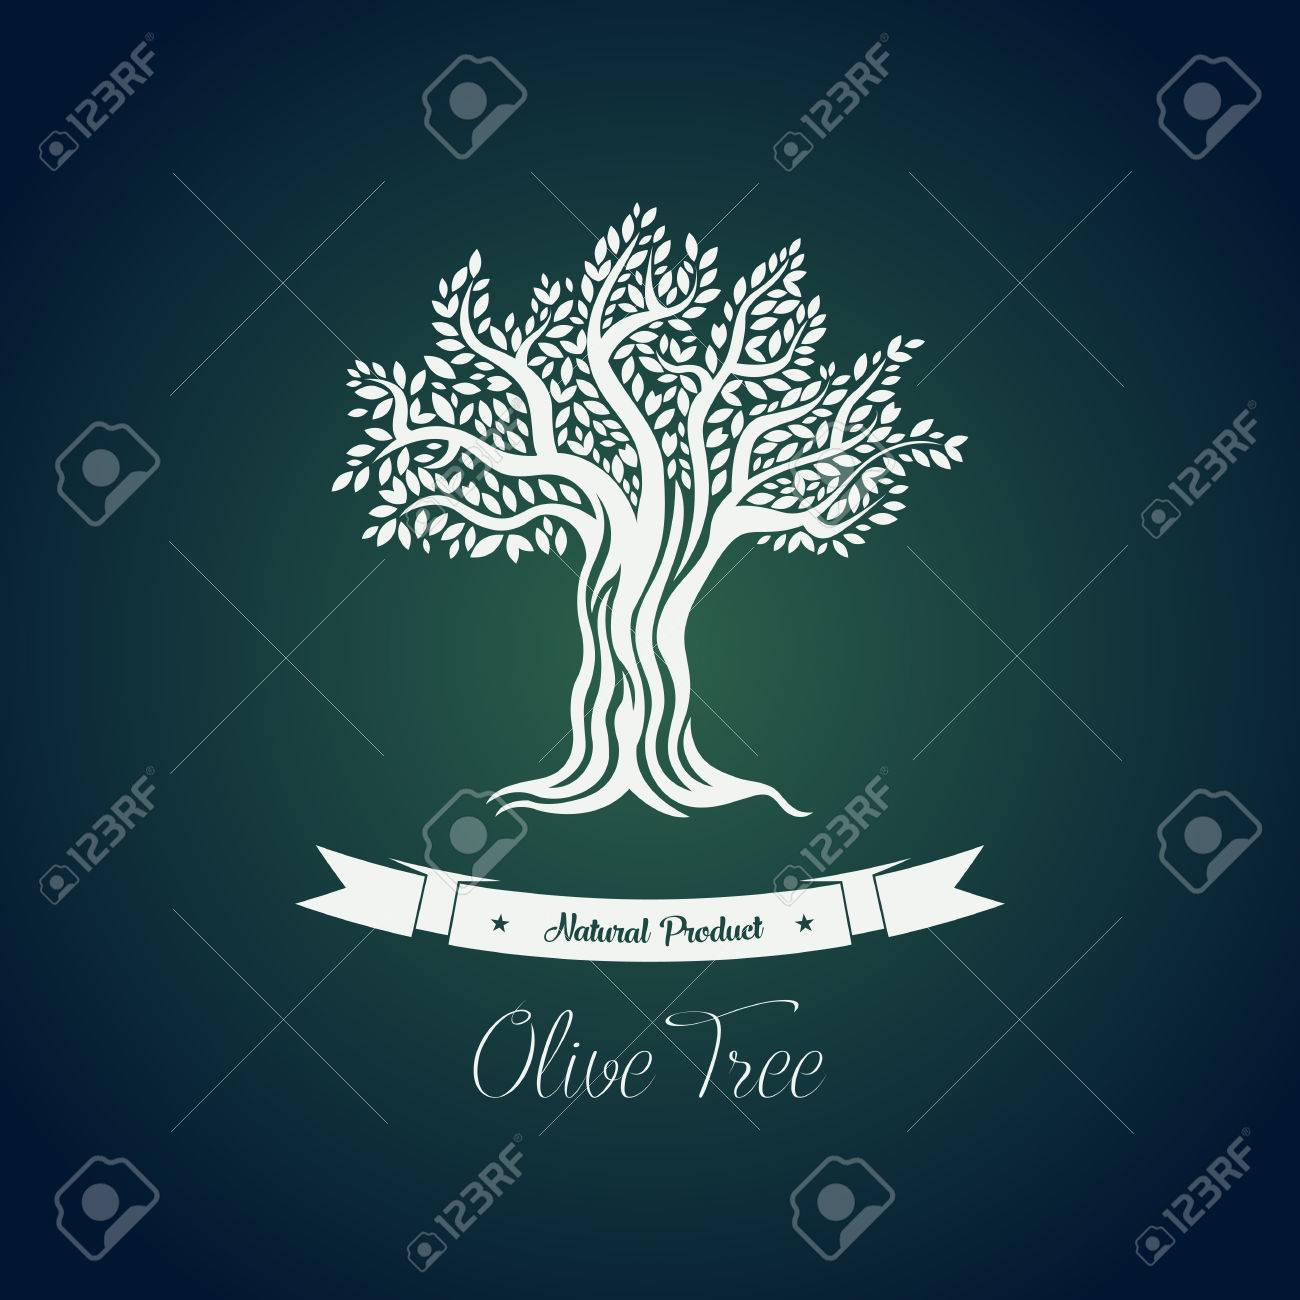 Olive Tree Vector Stock Photos. Royalty Free Olive Tree Vector Images